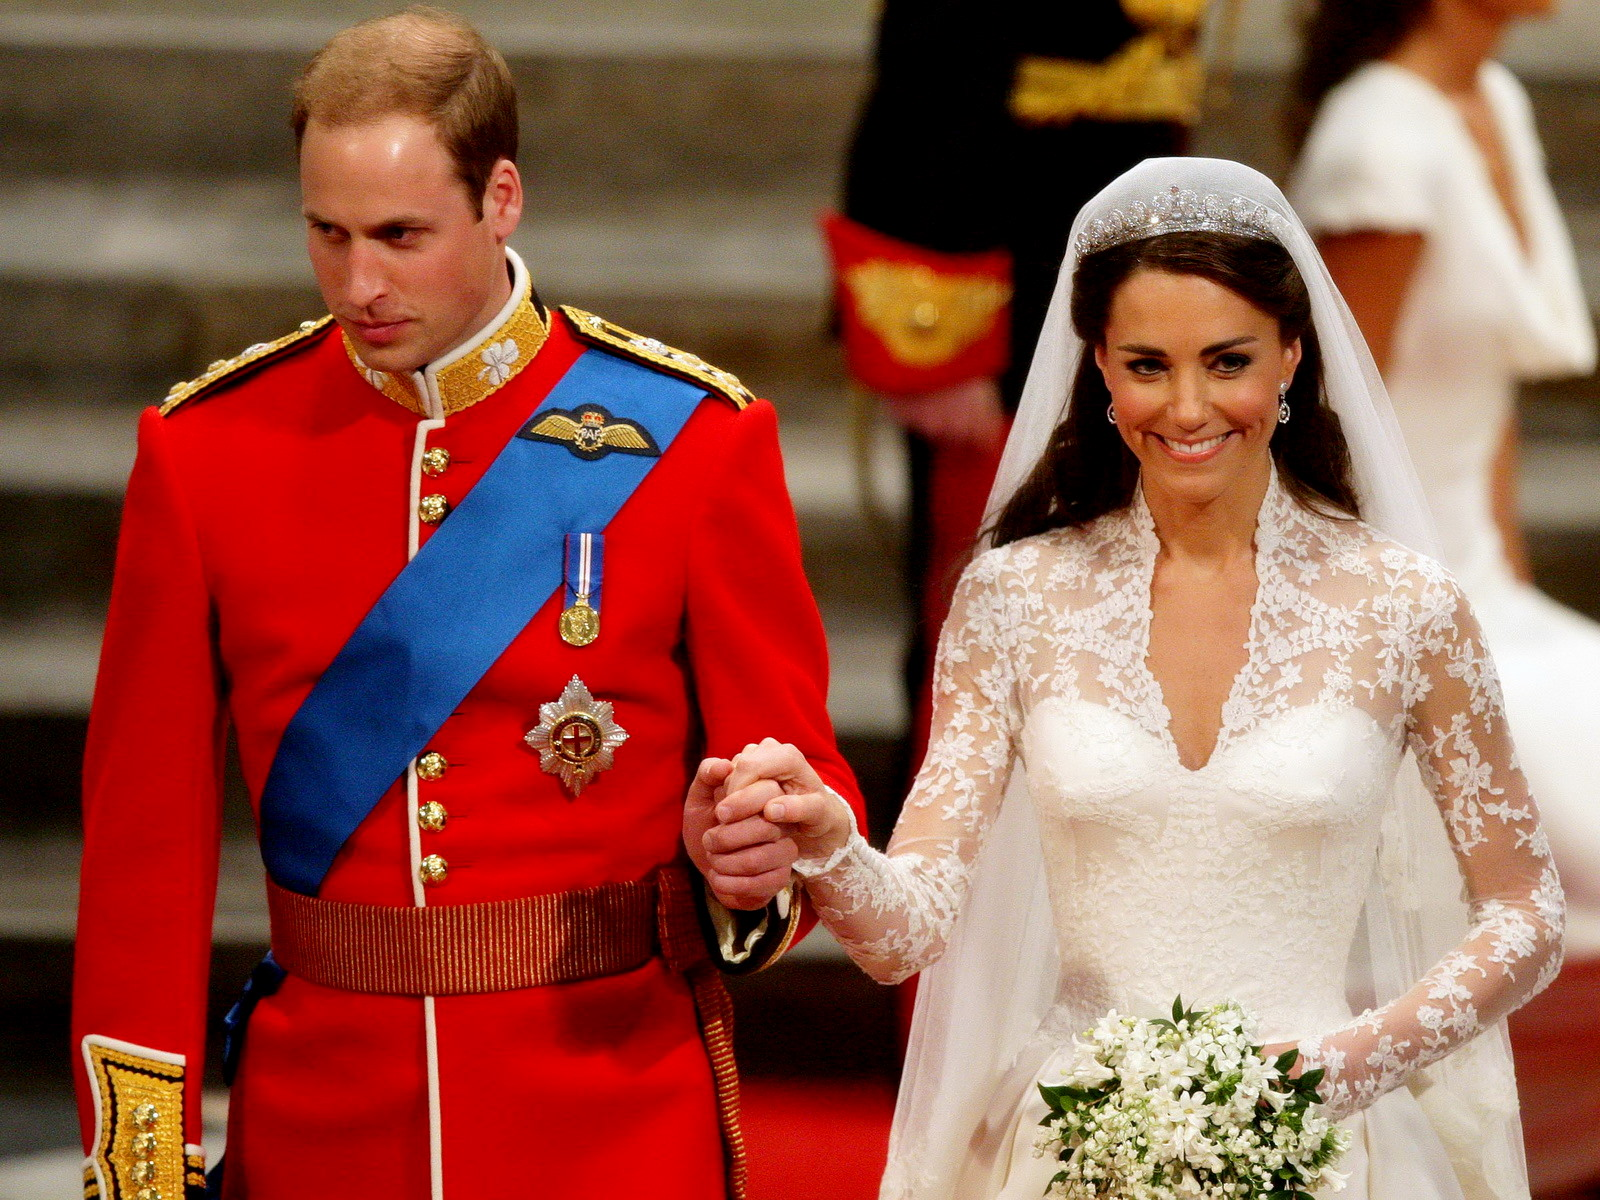 https://i0.wp.com/images6.fanpop.com/image/photos/33100000/Wills-Kate-prince-william-and-kate-middleton-33166687-1600-1200.jpg